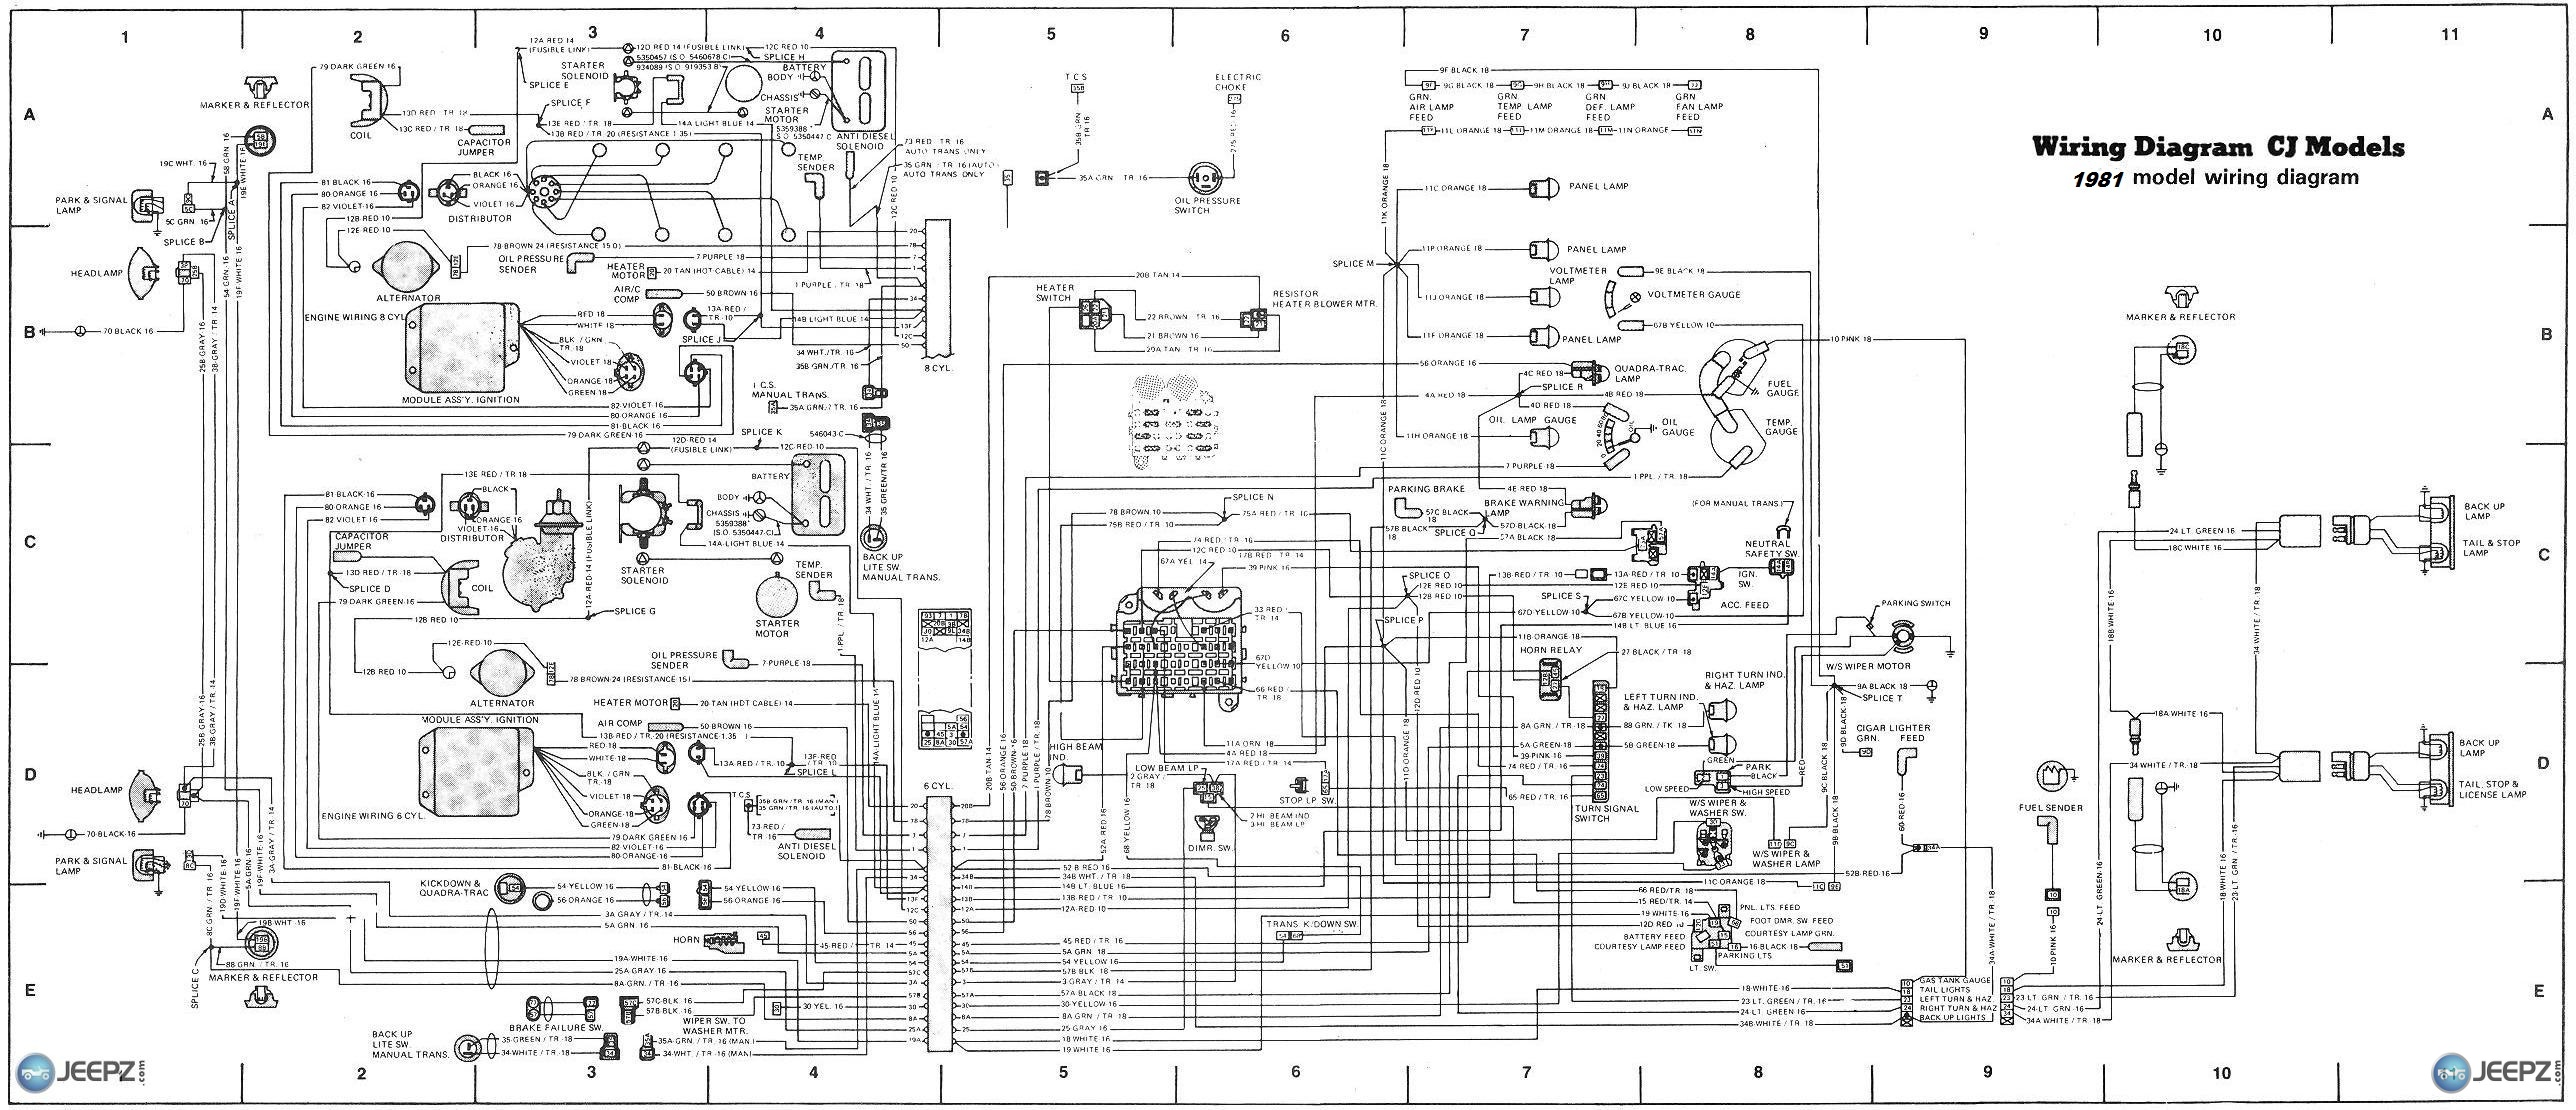 79 Cj5 Heater Diagram - Wiring Diagram Overview cable-side -  cable-side.aigaravenna.itdiagram database - aigaravenna.it